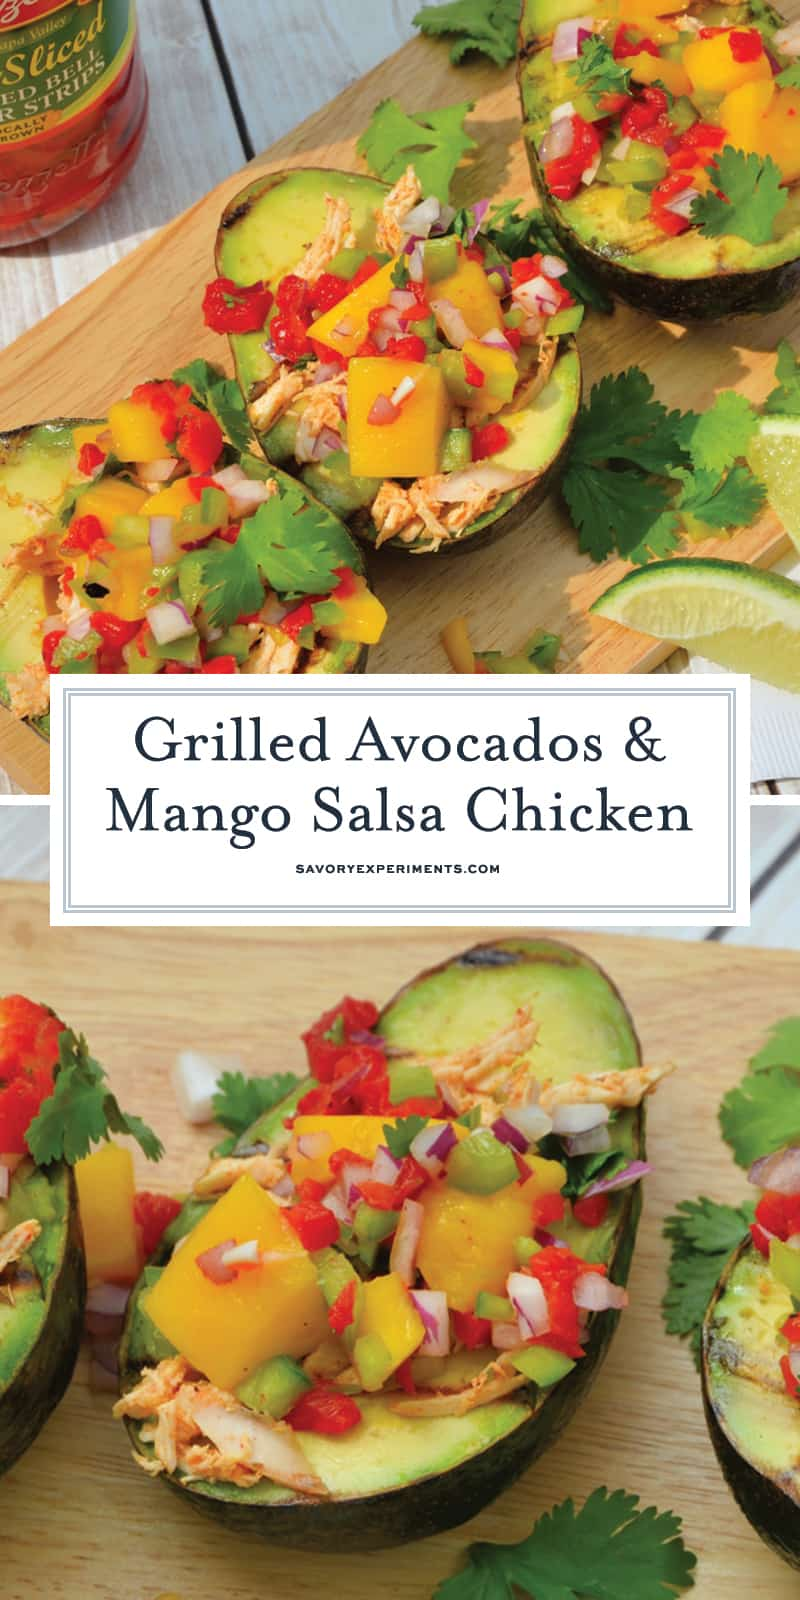 Delicious Grilled Avocados with Mango Salsa Chicken will have you feeling like you are on a tropical vacation without leaving your backyard. Healthy and easy to make! #grilledavocados www.savoryexperiments.com